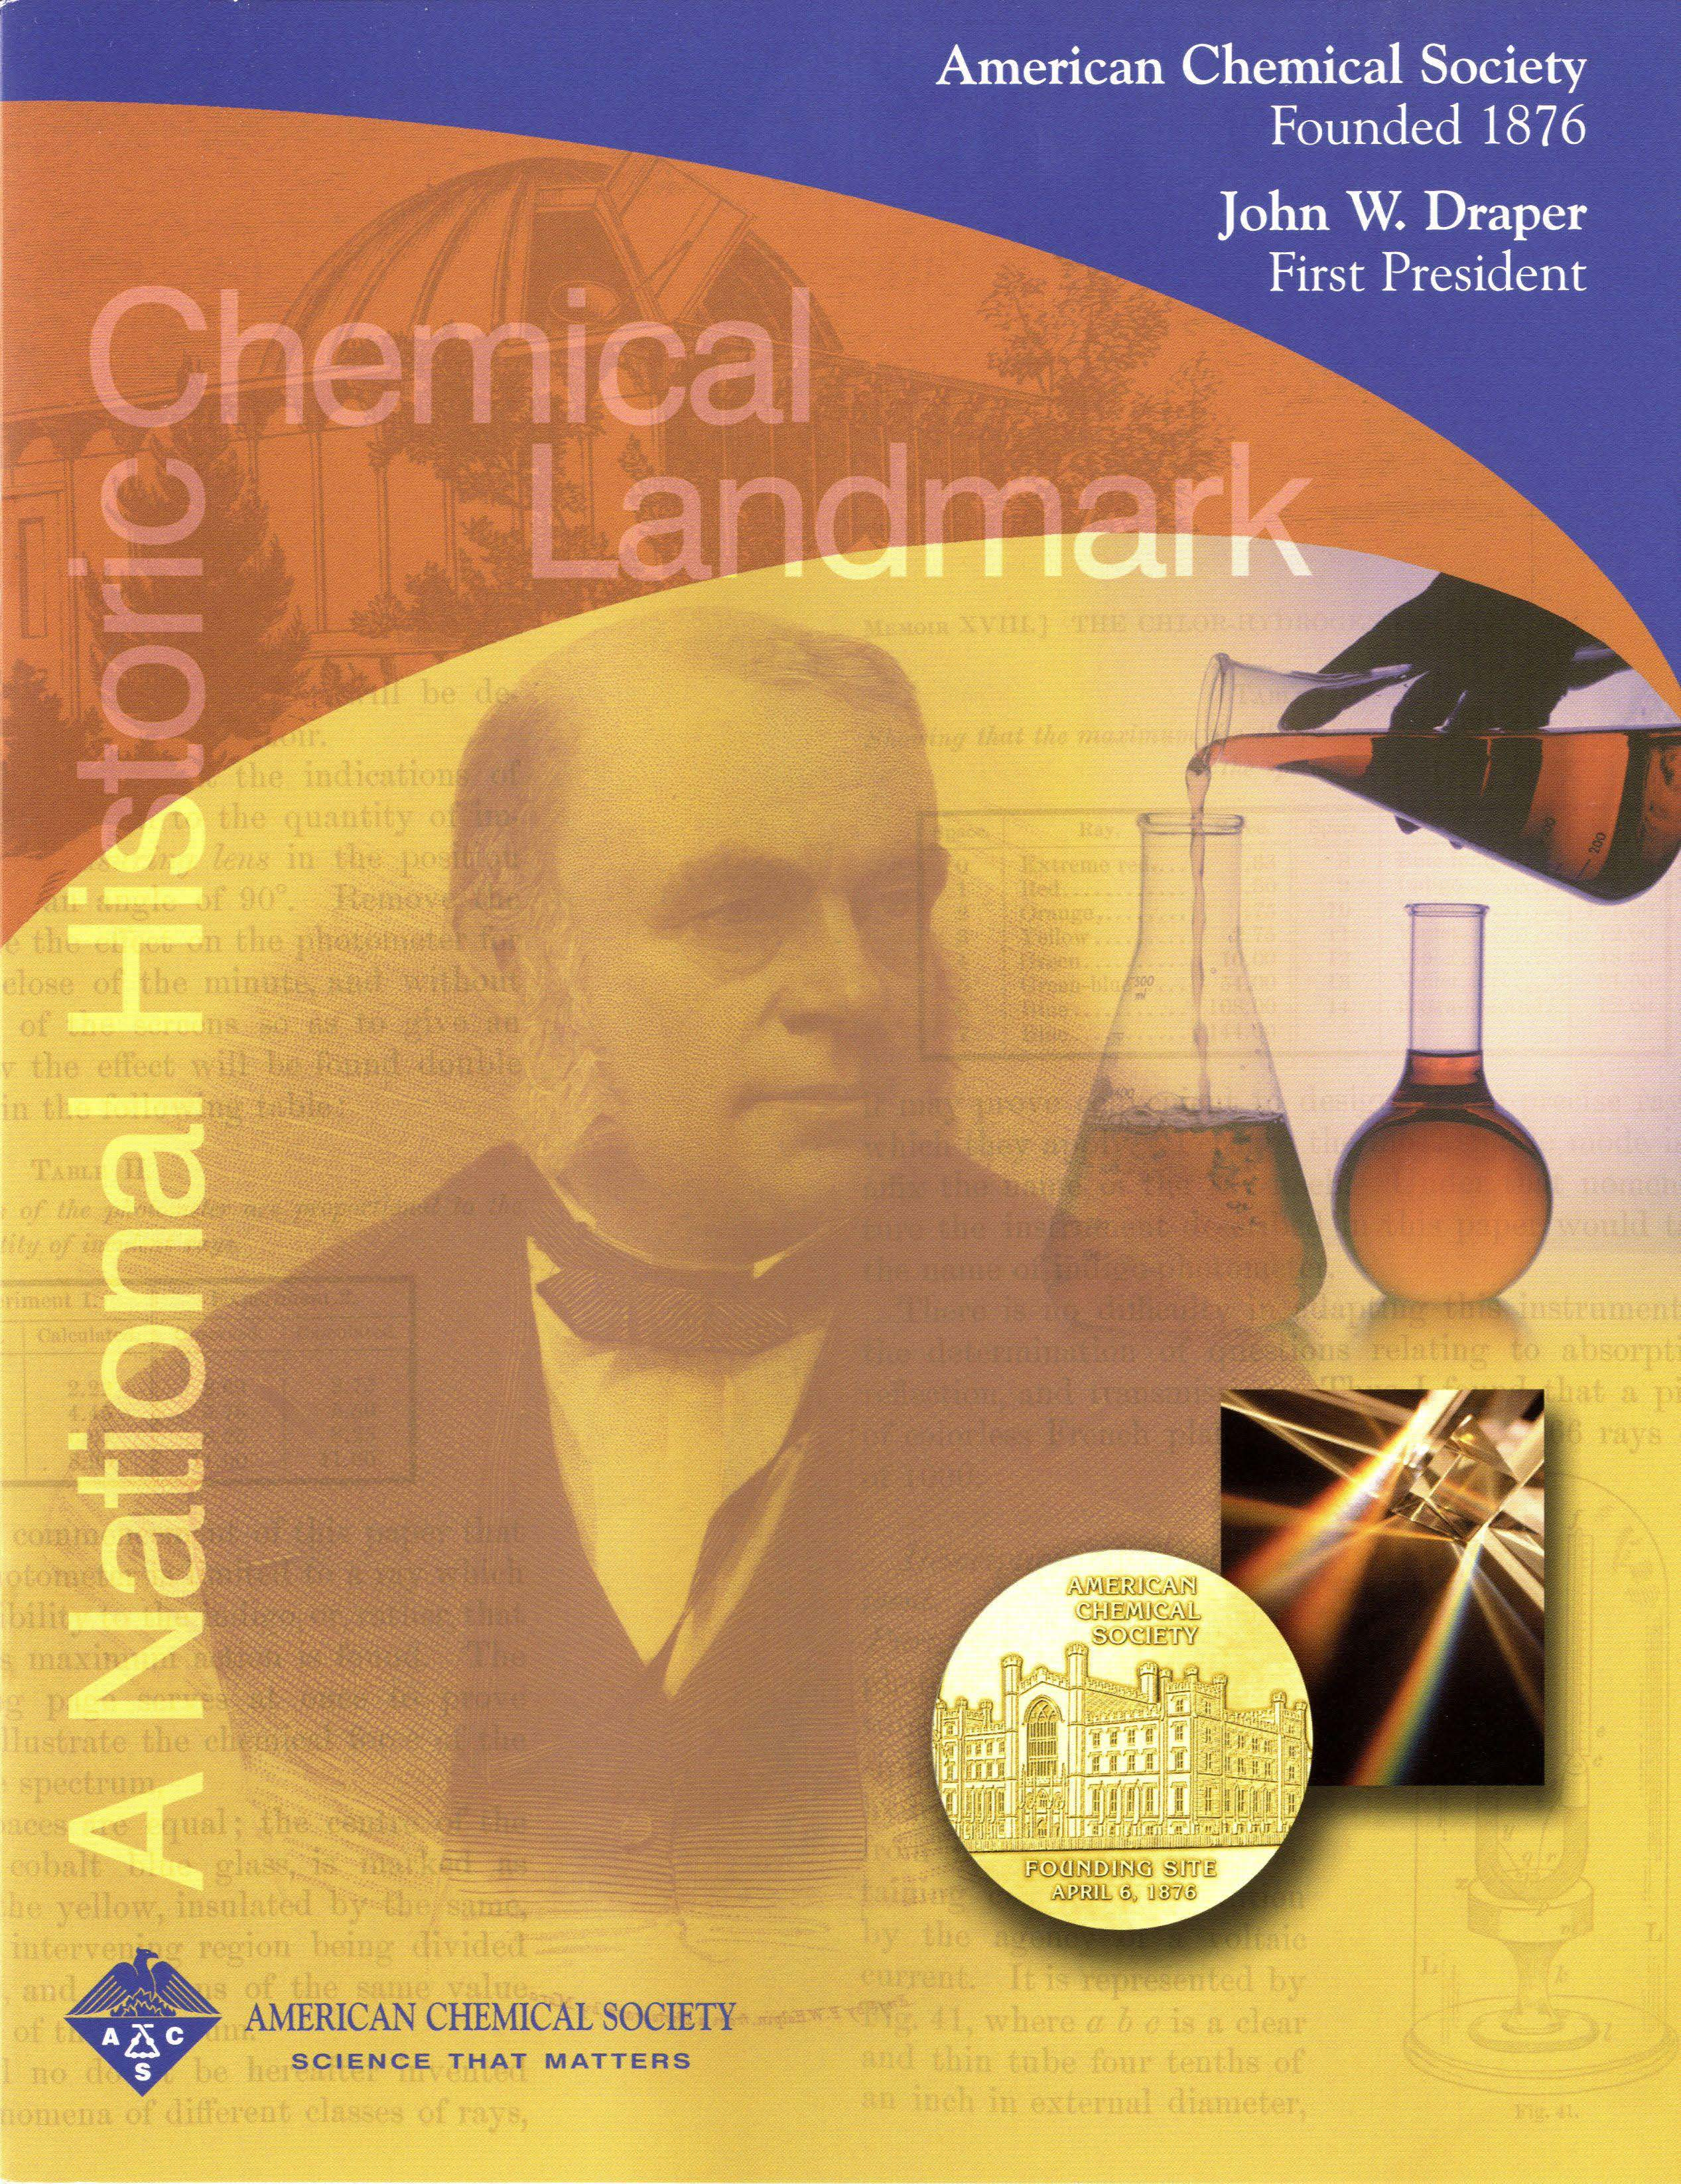 """American Chemical Society Founded 1876, John W. Draper First President"" commemorative booklet"